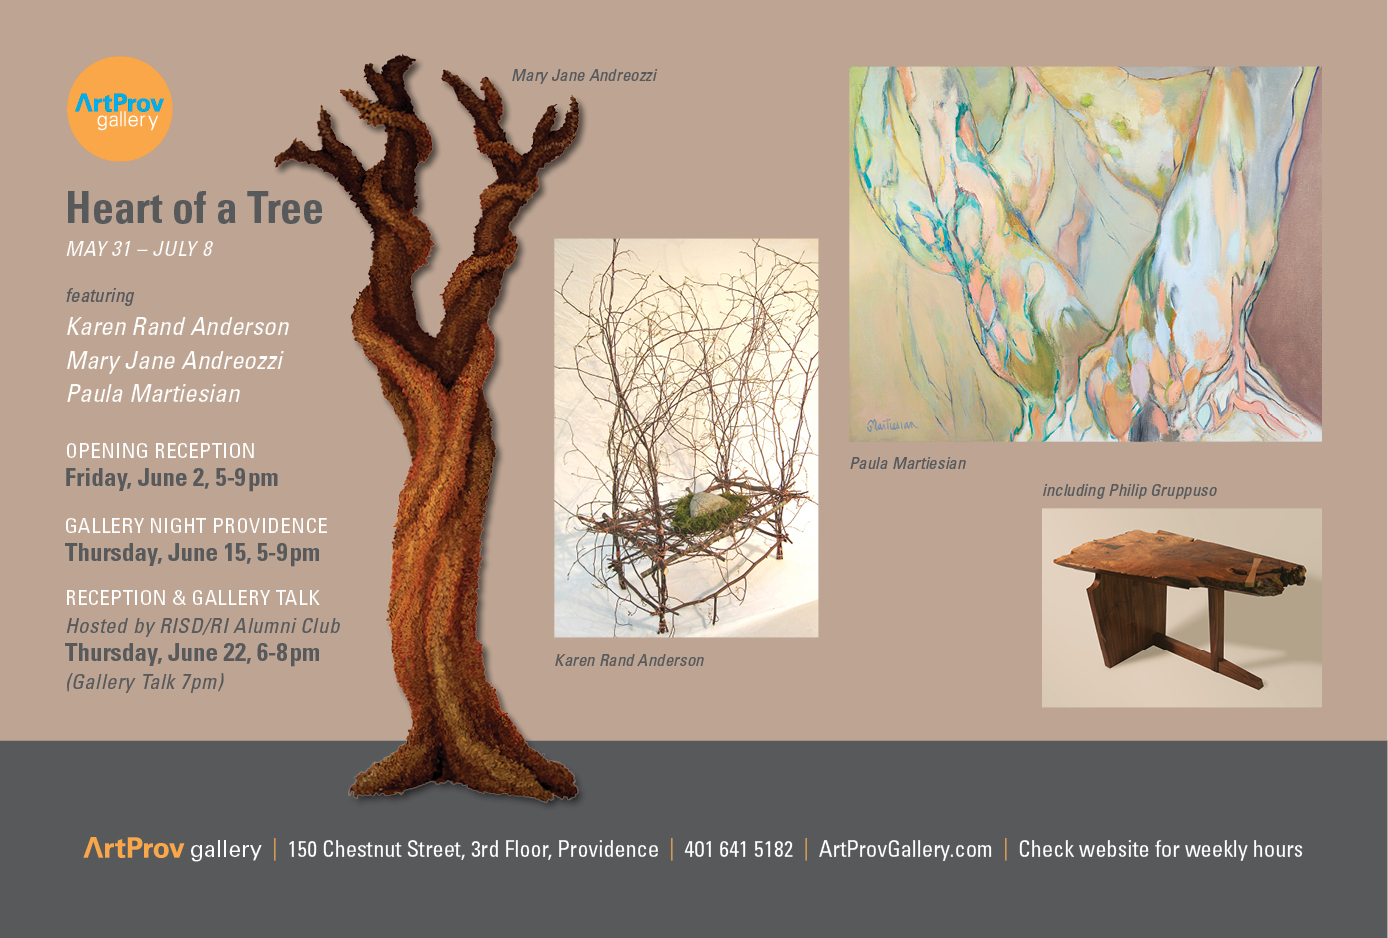 Heart of a Tree exhibition